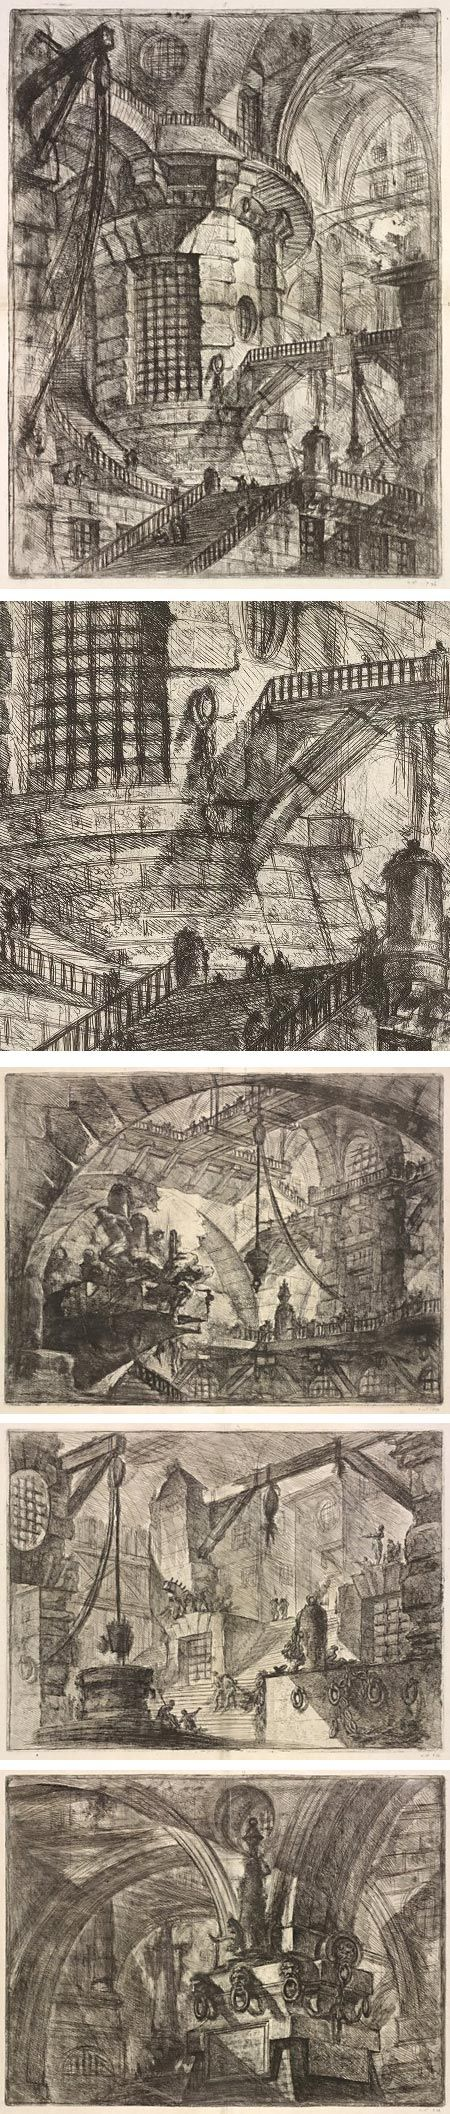 Texas letters with clown faces tattoos by stevie garza - Piranesi S Prisons Architecture Of Mystery And Imagination Giovanni Battista Piranesi Study In Line